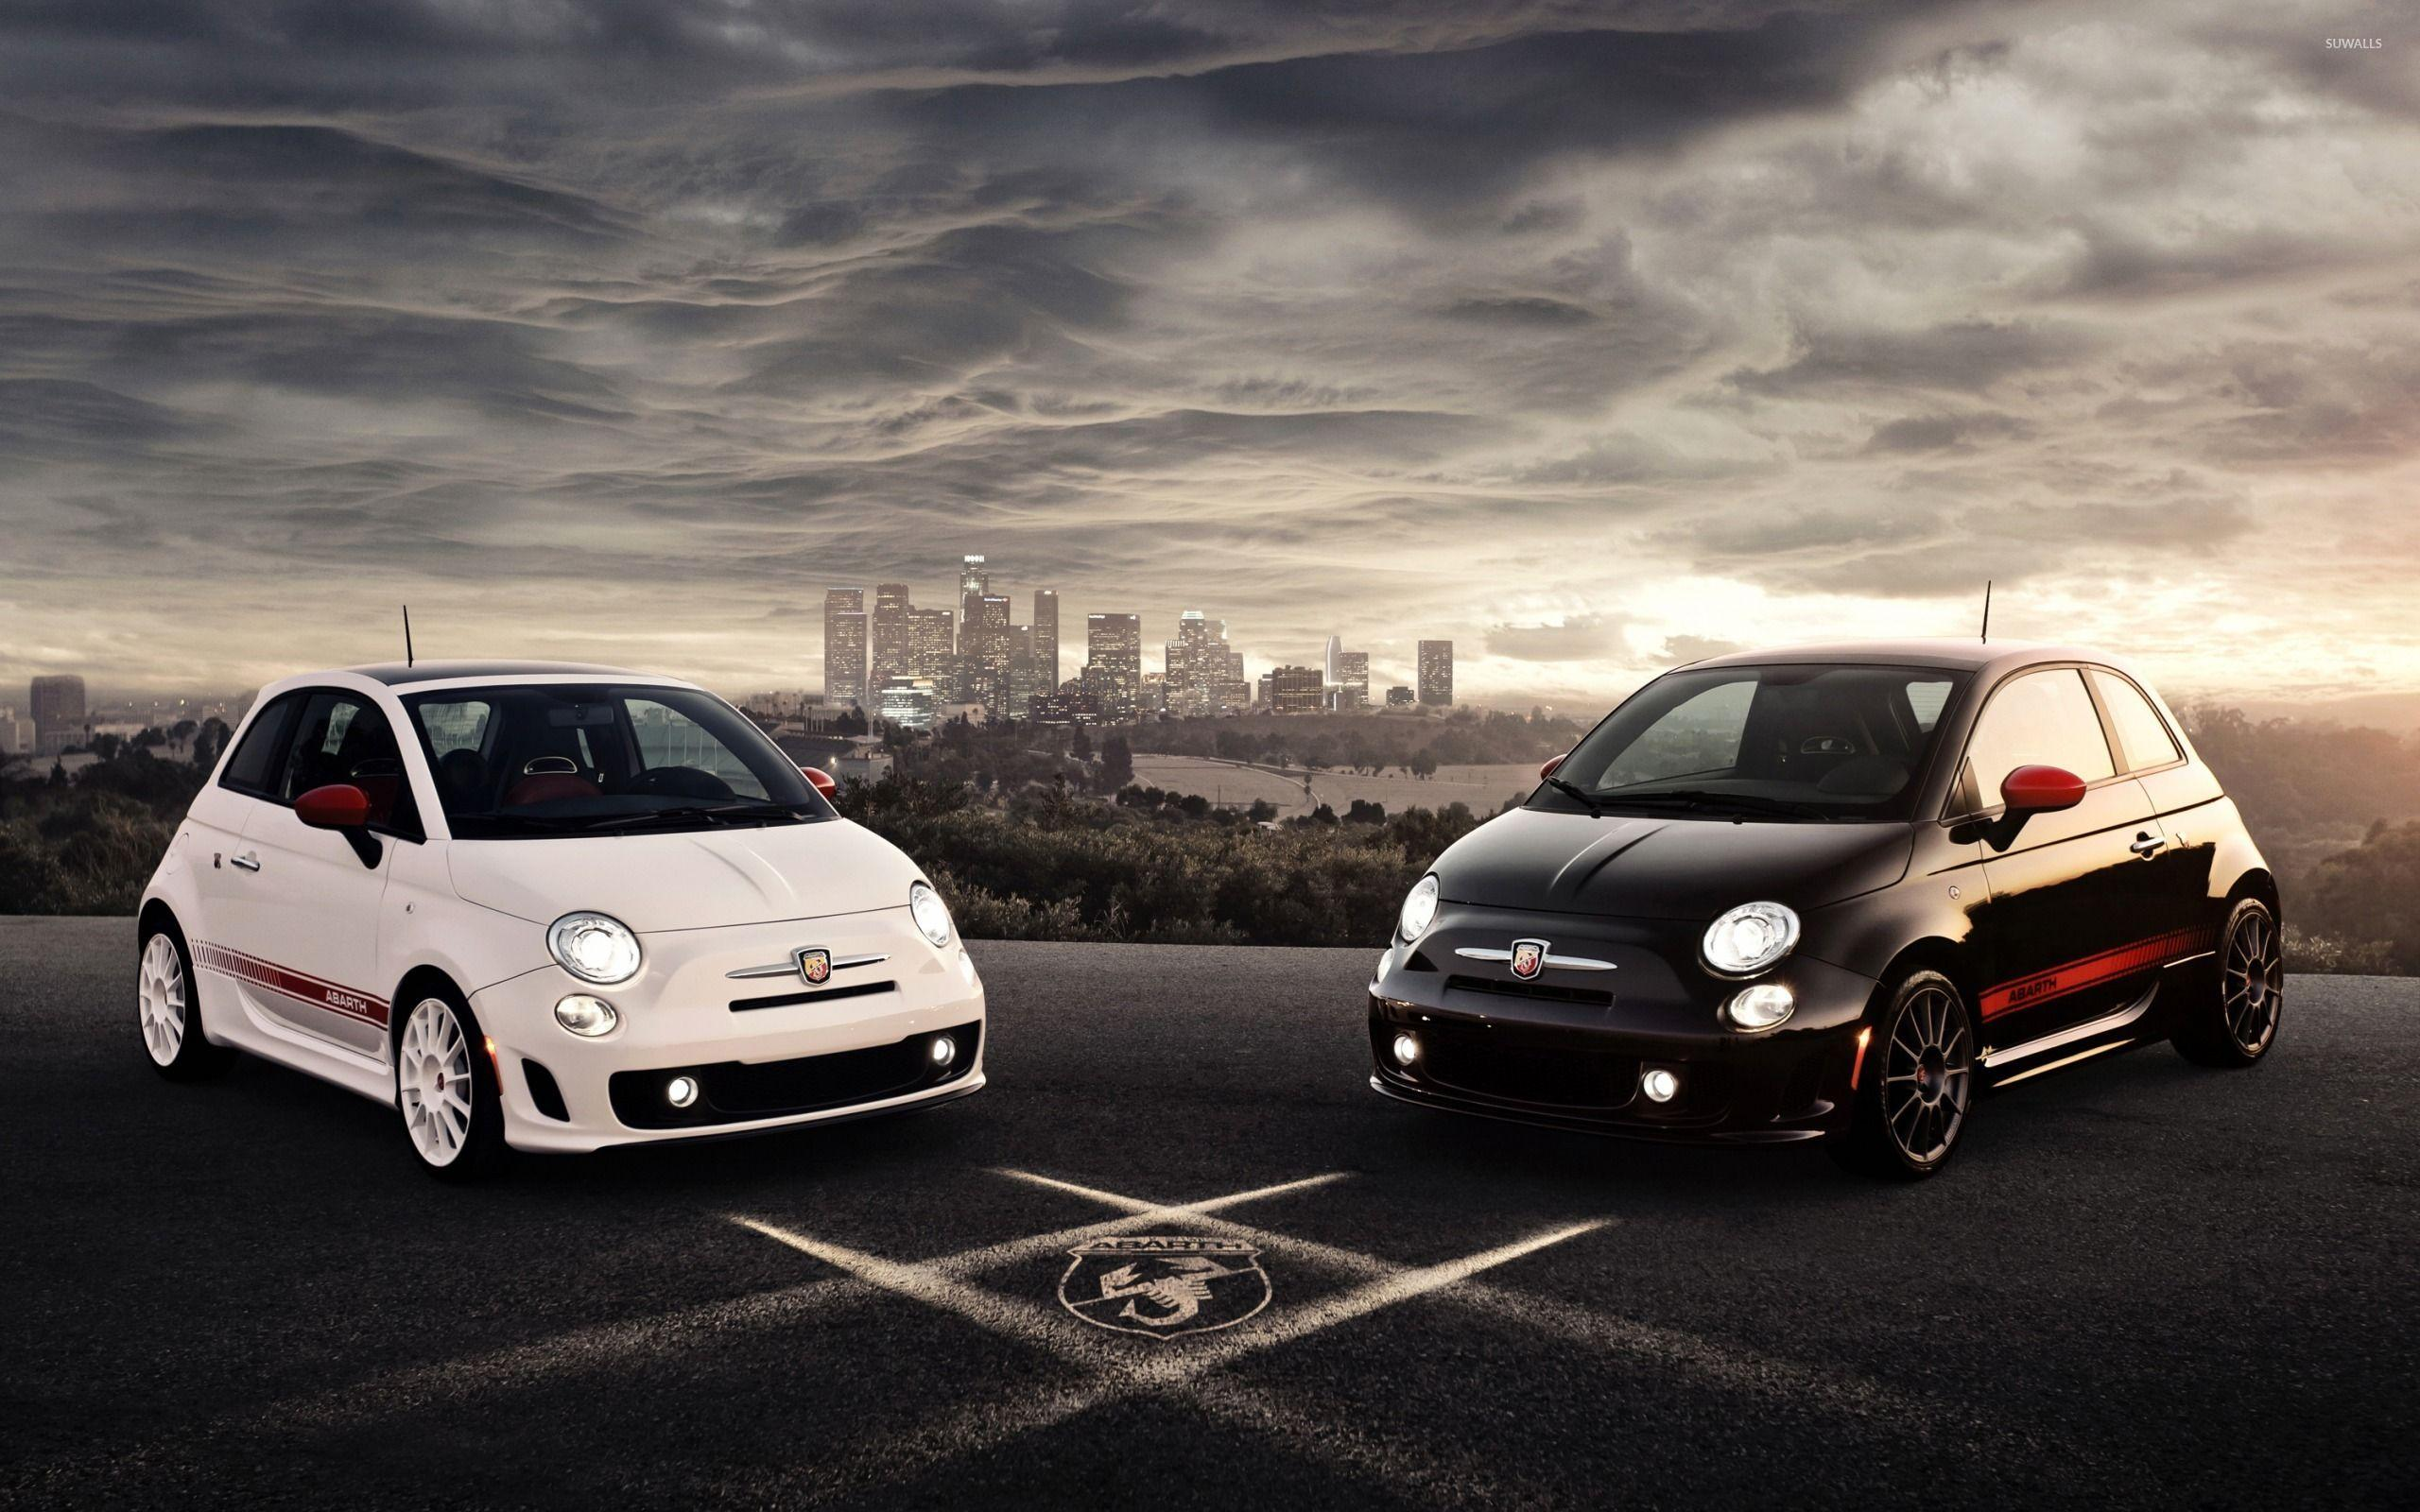 Fiat 500 Wallpapers 6 - 2560 X 1600 | stmed.net